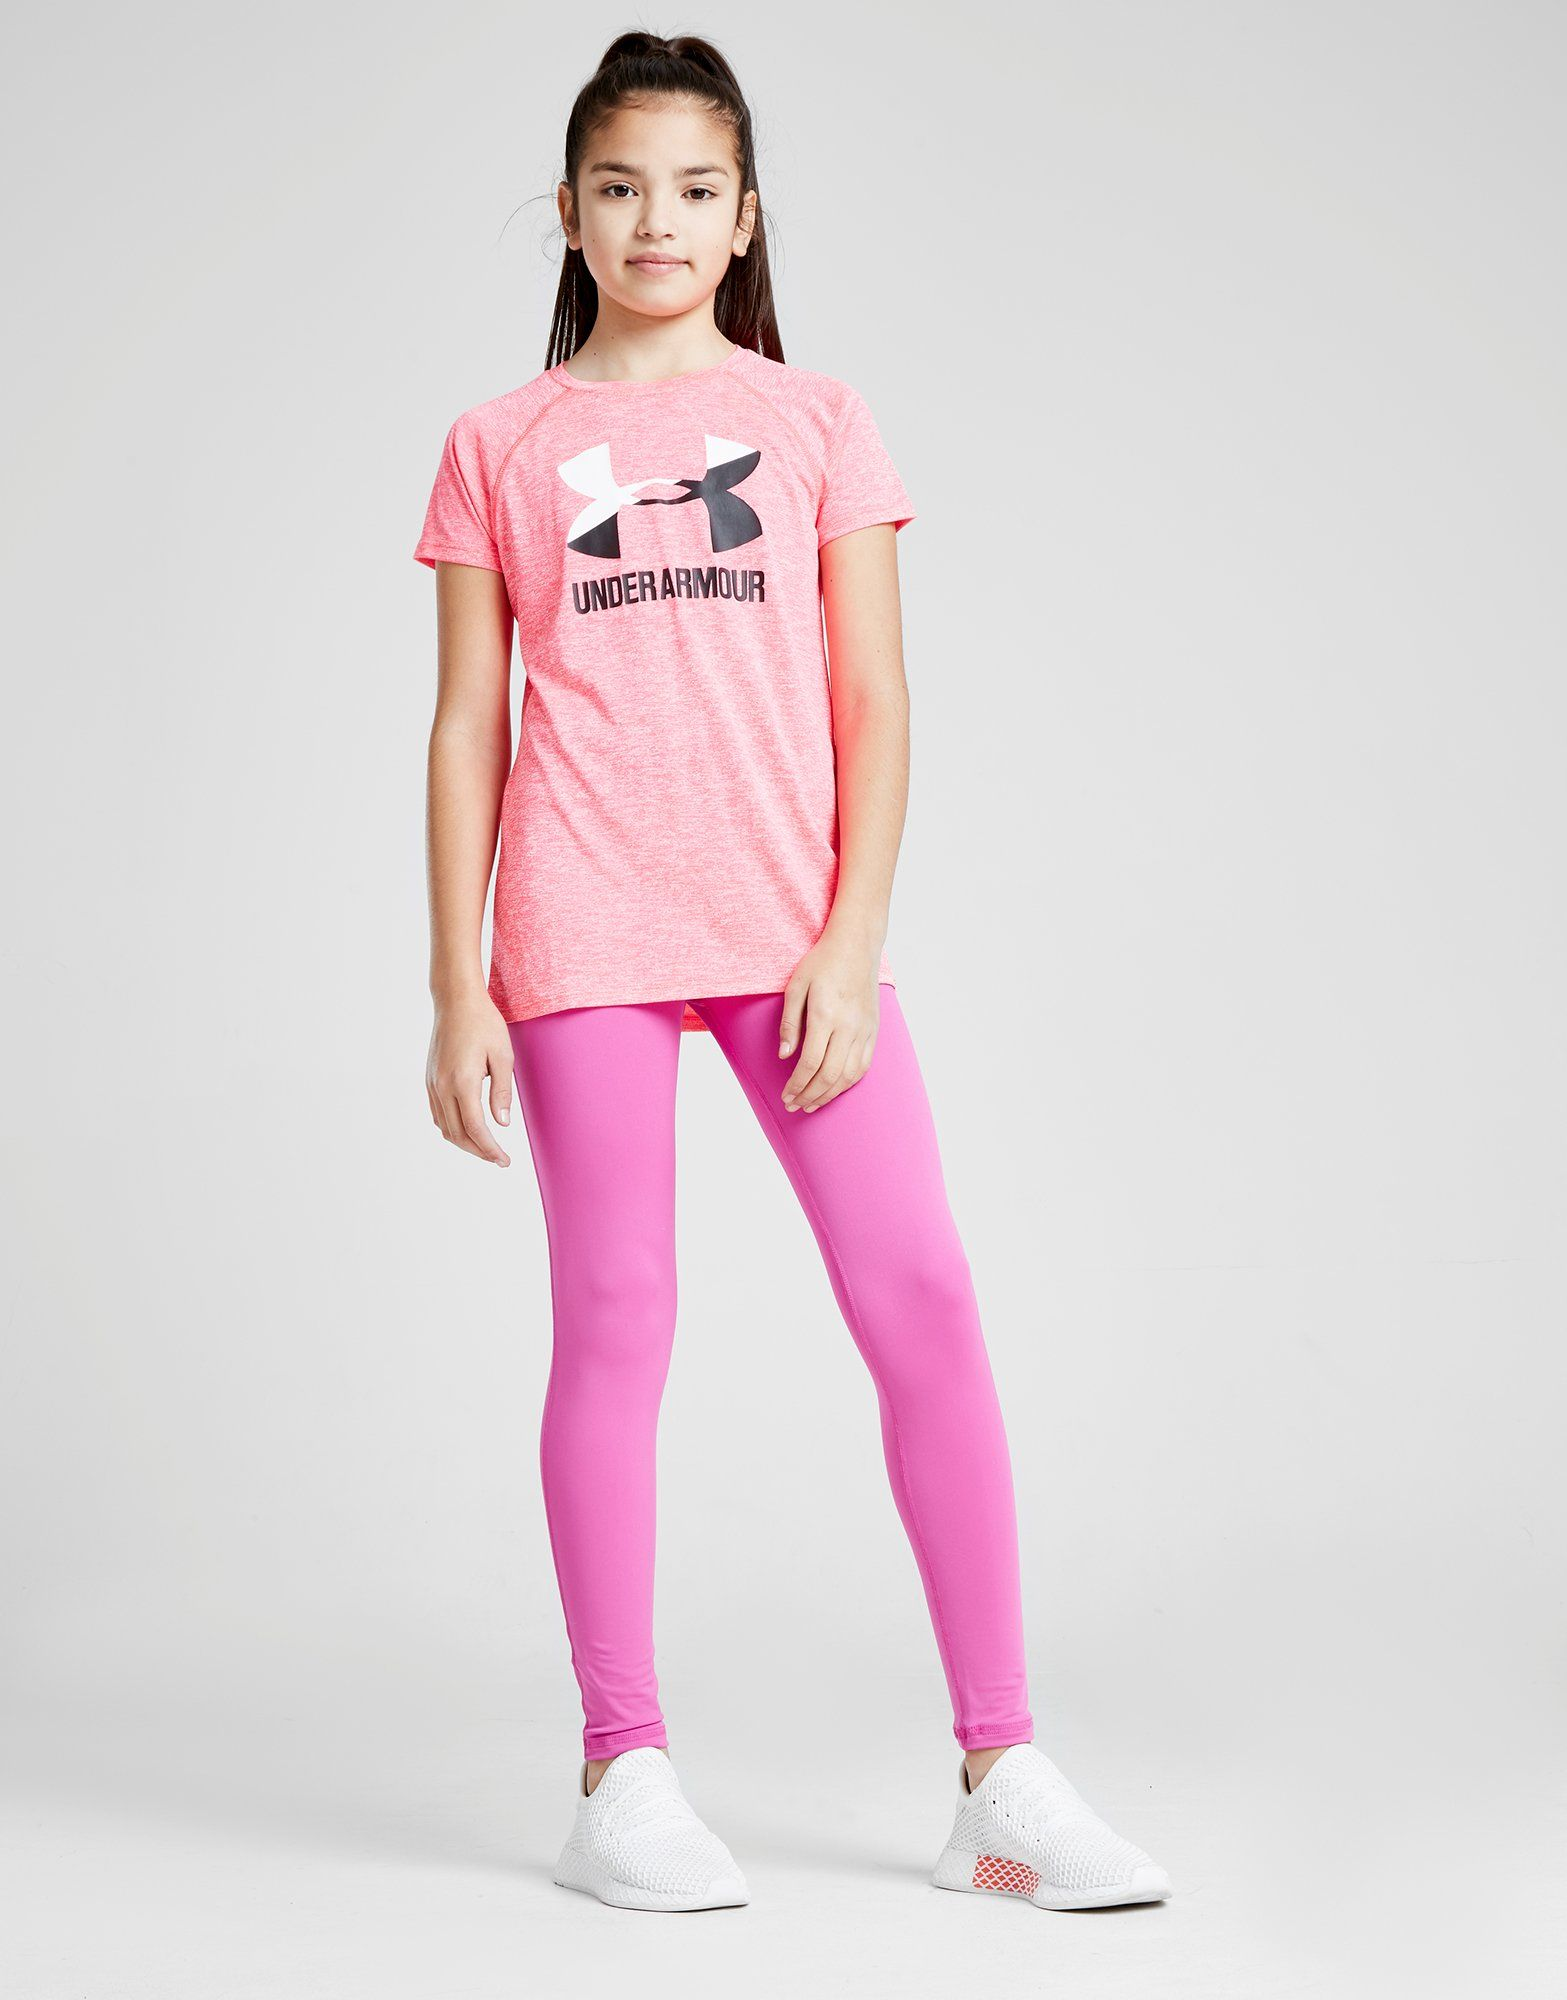 Under Armour Girls' Tights Junior